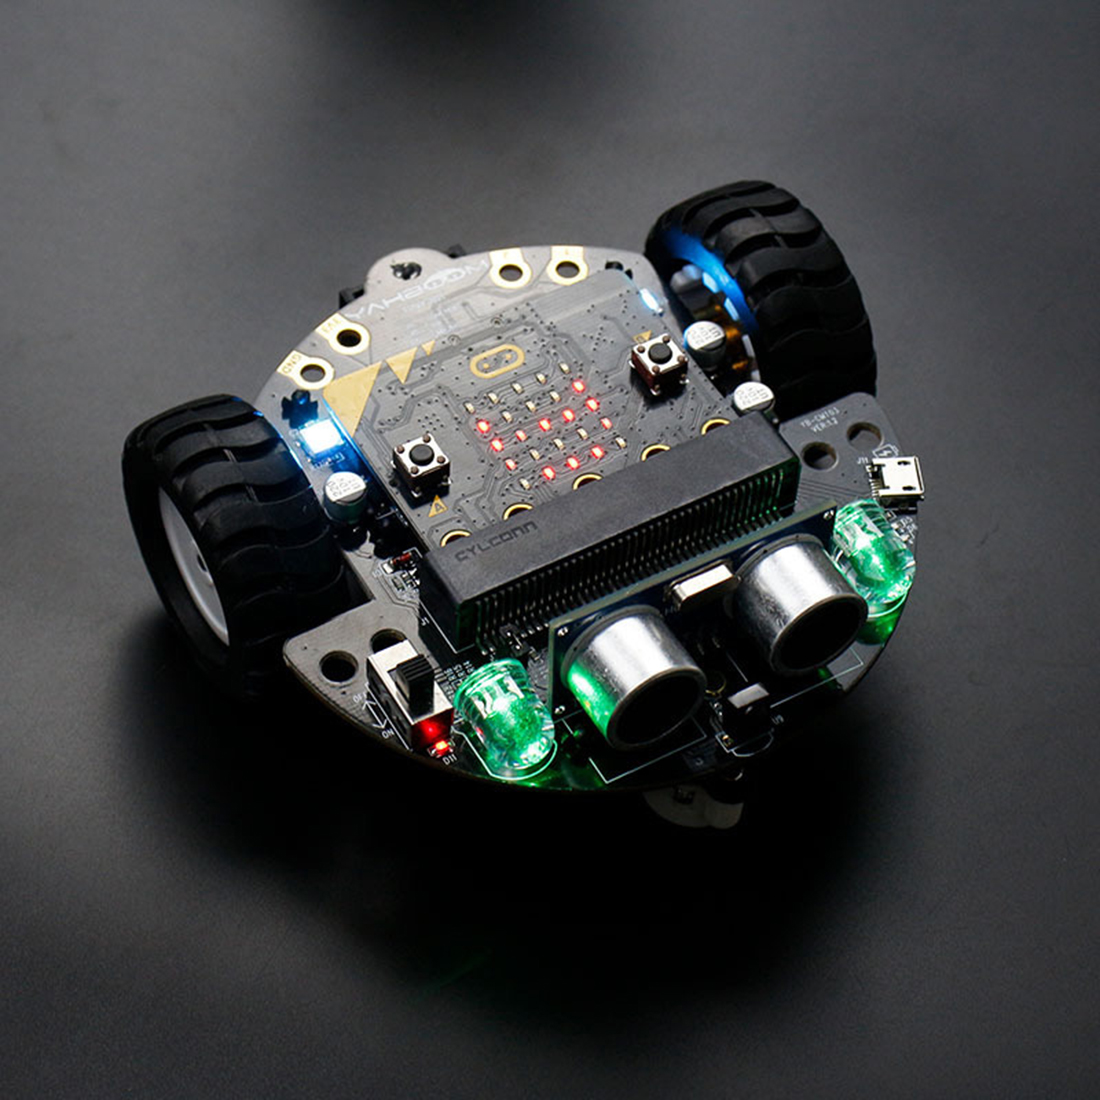 DIY Obstacle Avoidance Smart Programmable Robot Car Educational Learning Kit without Mainboard for Micro:bit Gift for Children 1